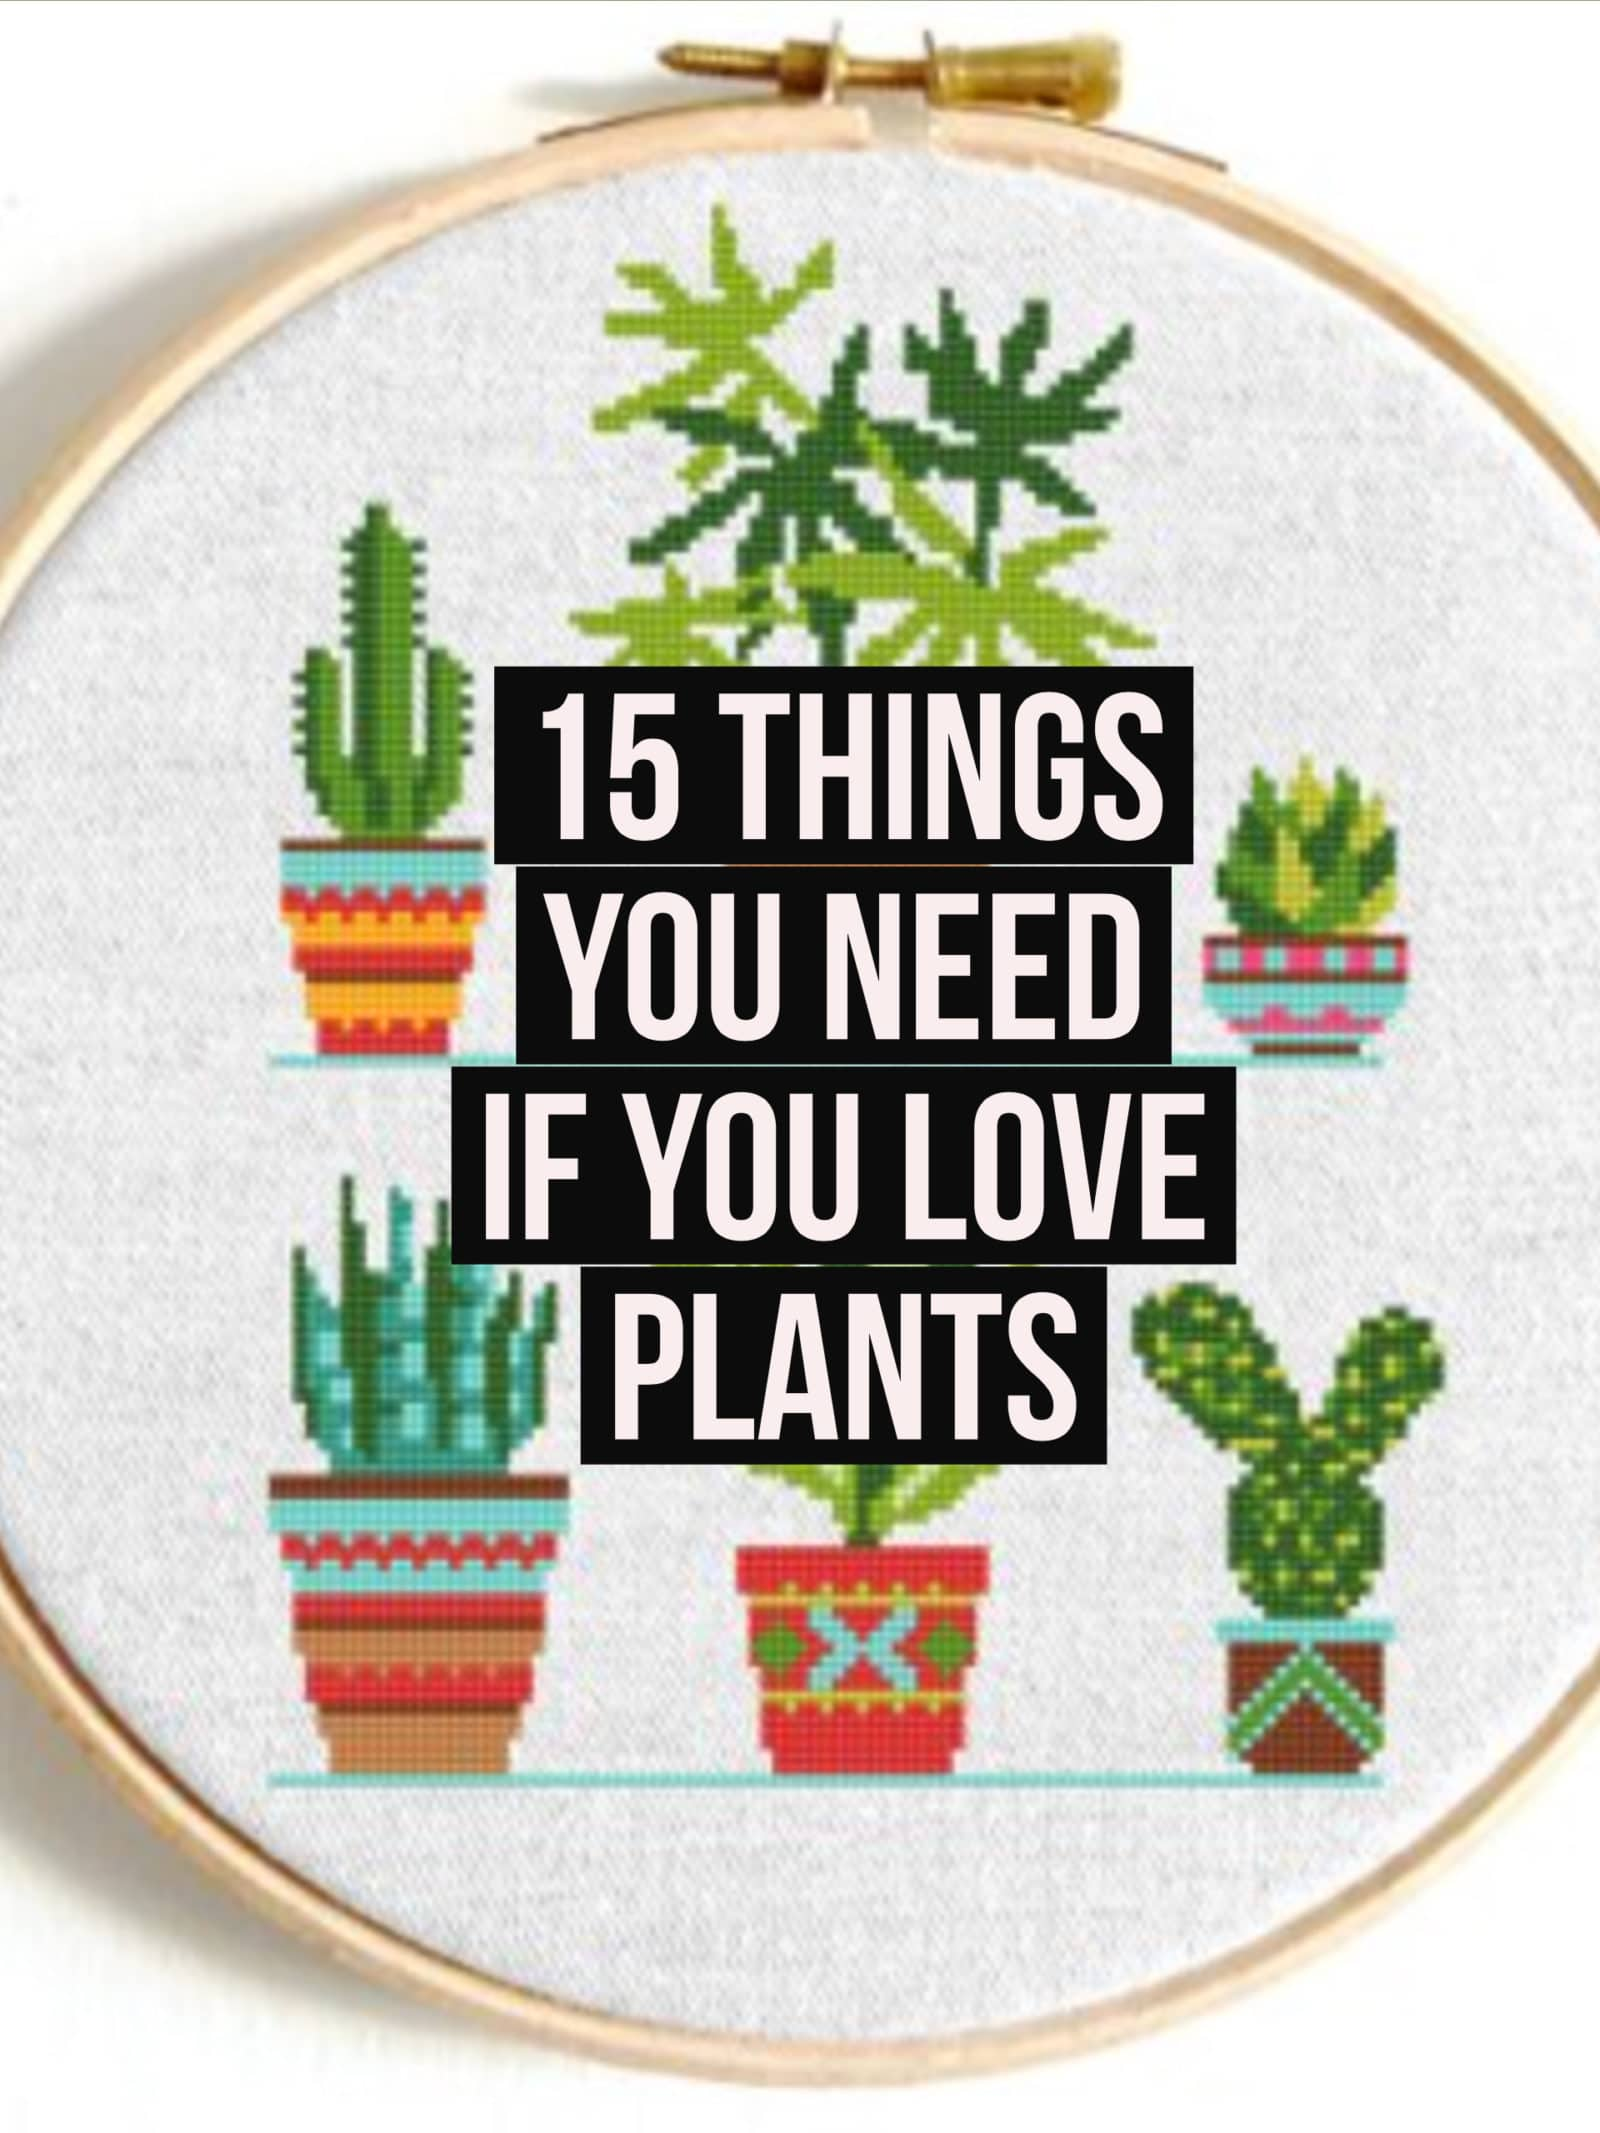 15 things you need if you love plants